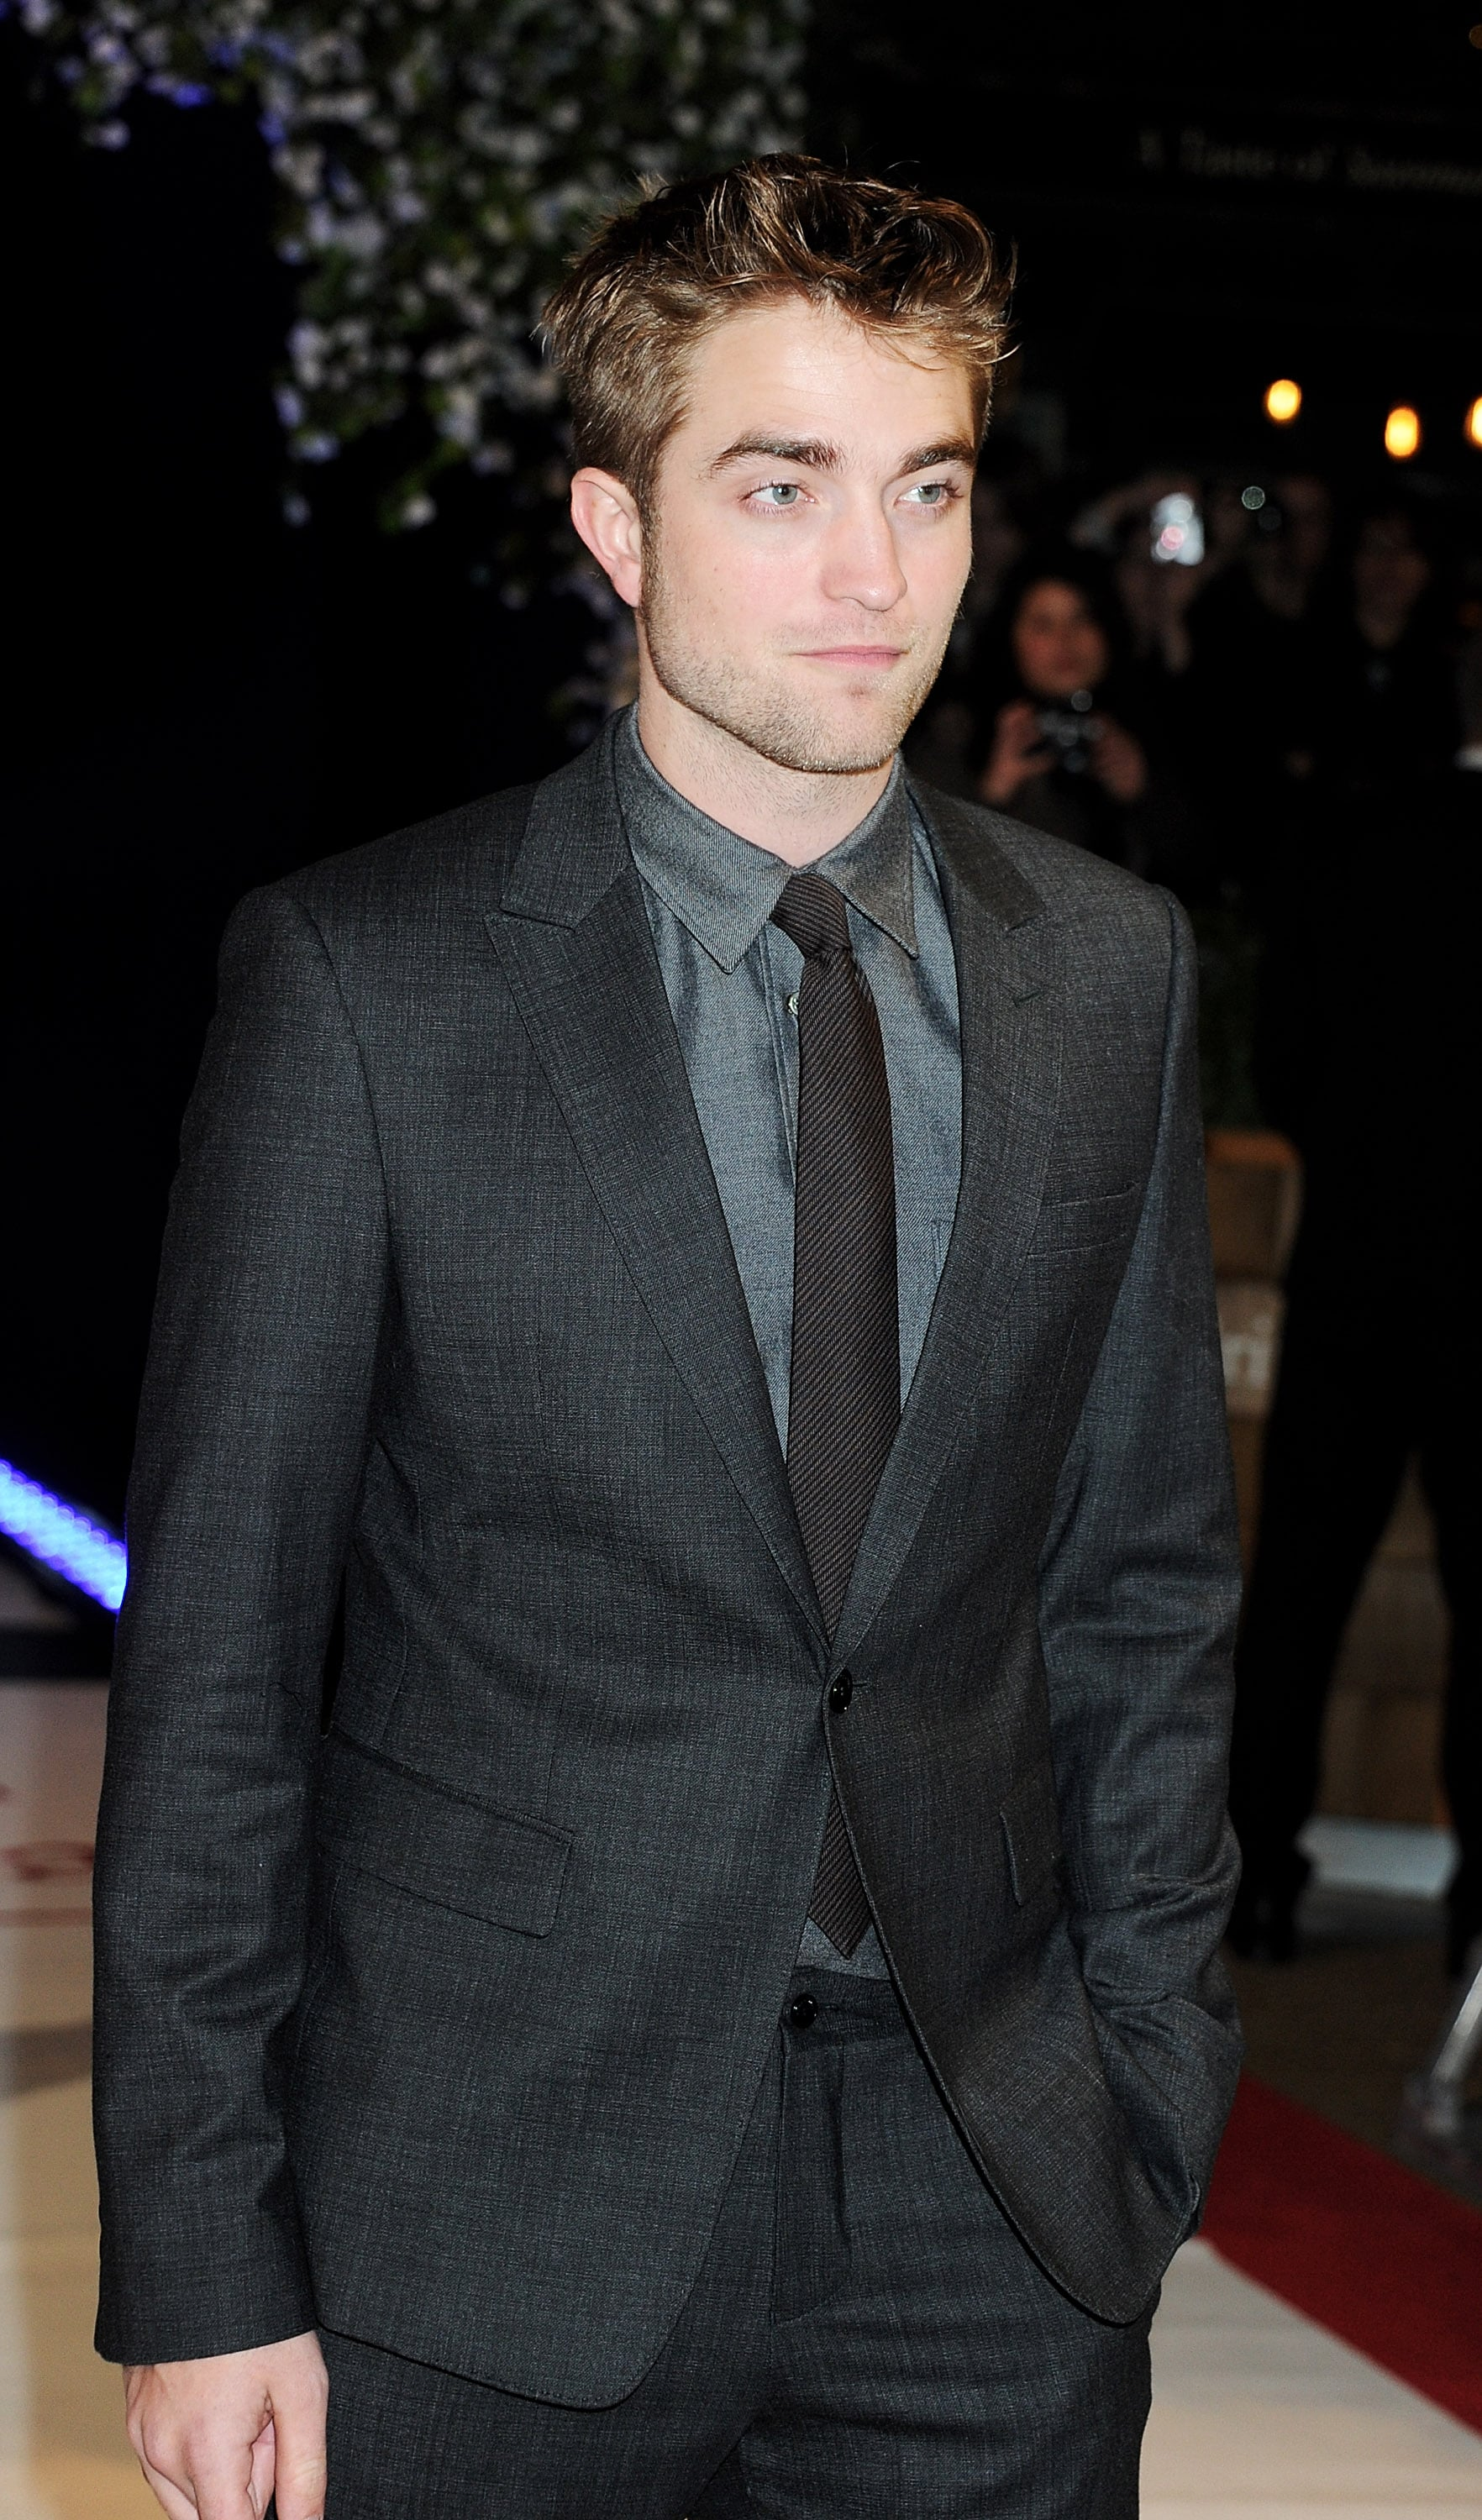 Robert Pattinson in a suit at the UK premiere of Breaking Dawn Part 1.